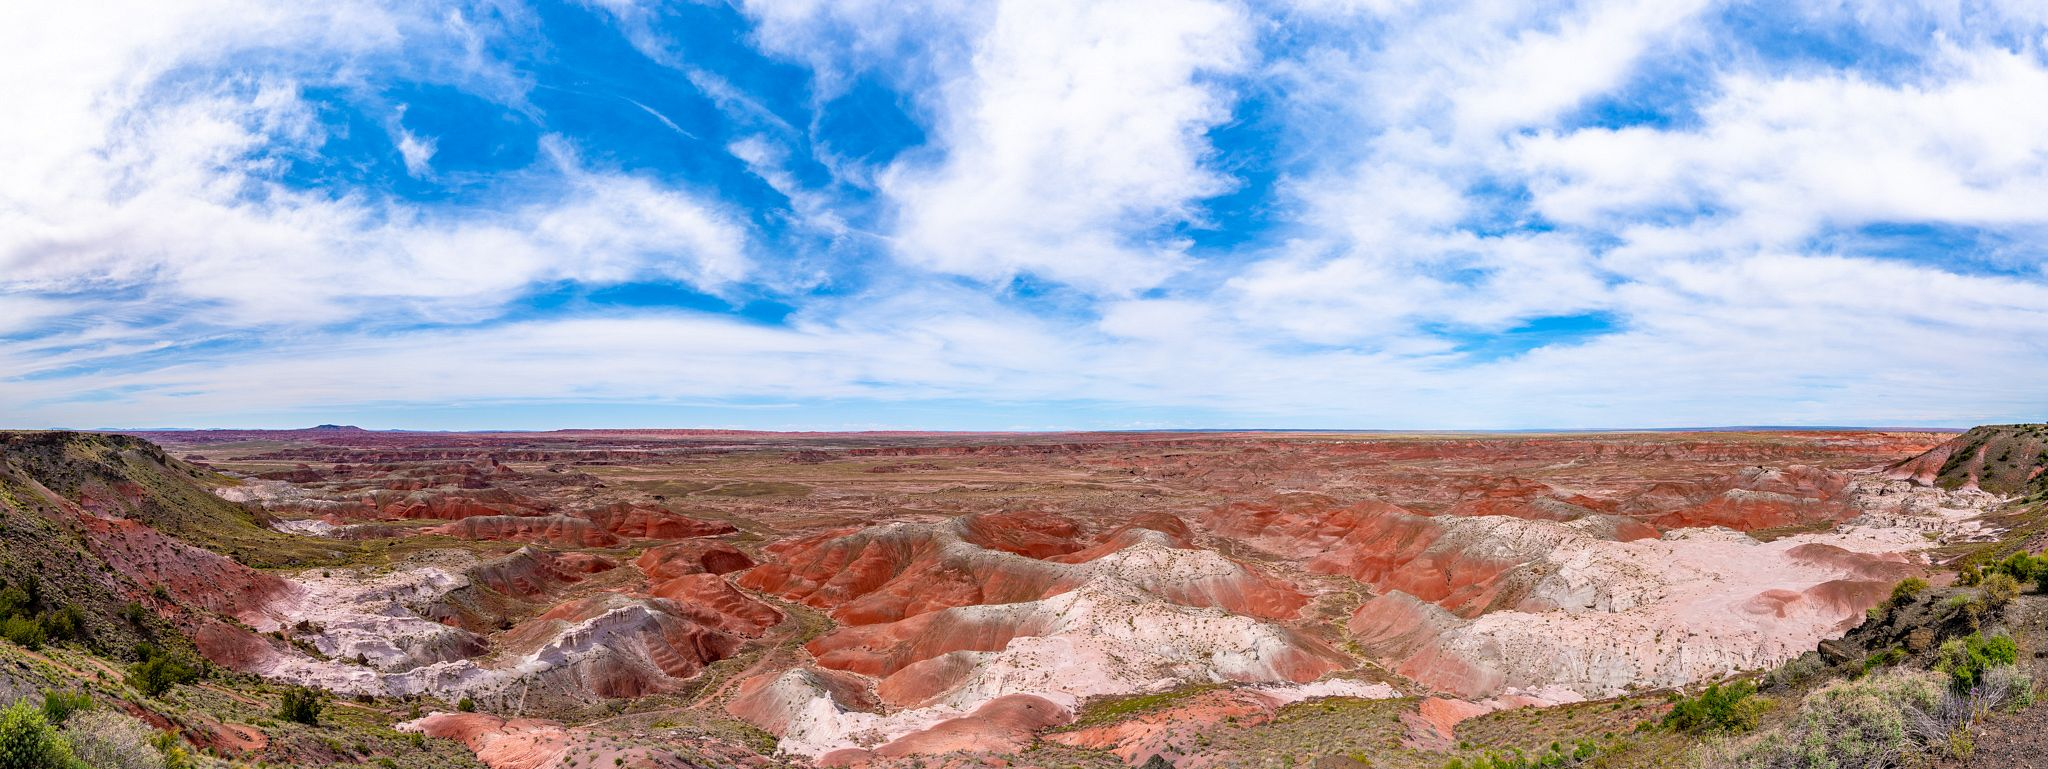 Petrified Forest National Park Panorama